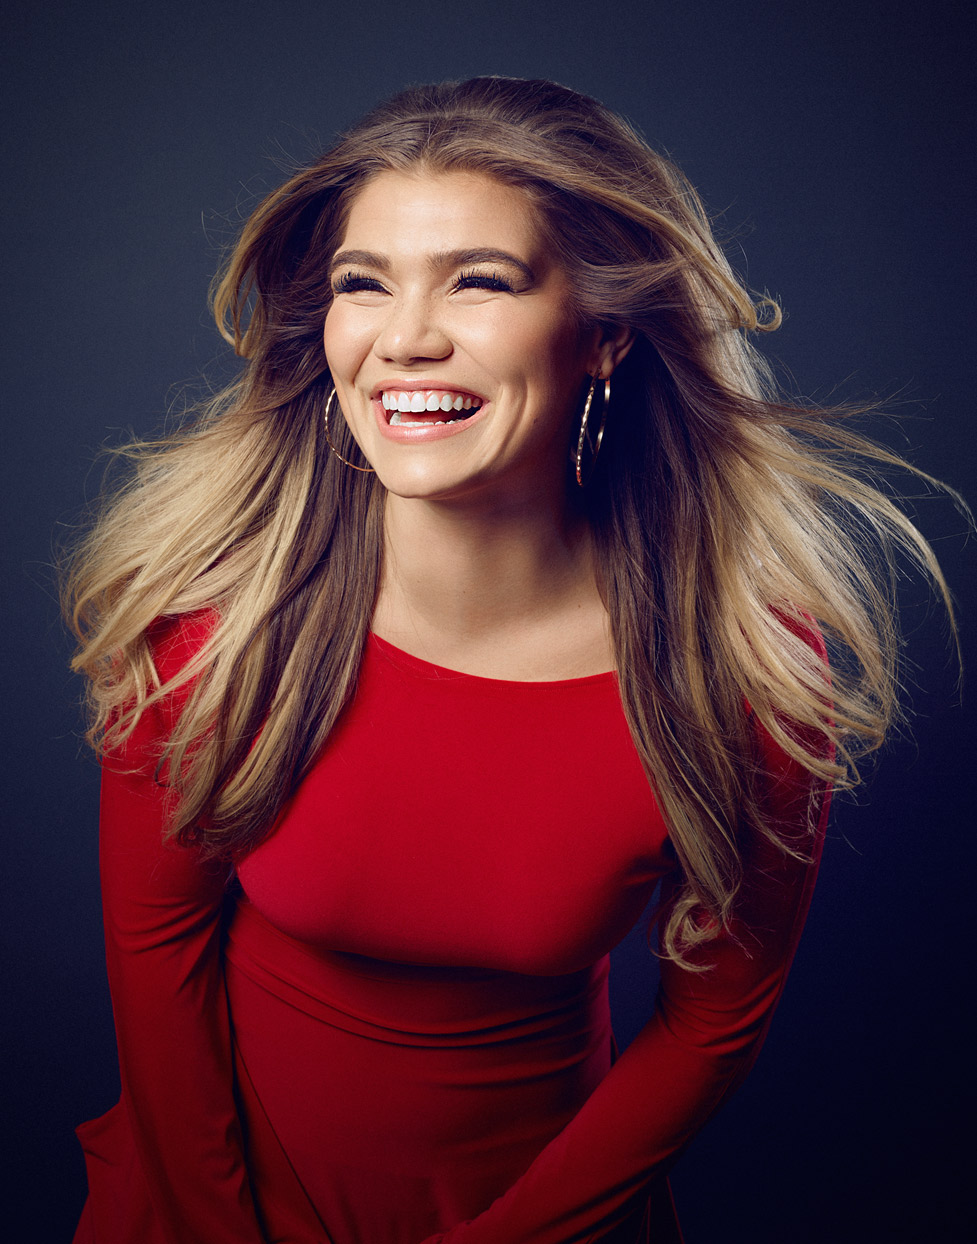 Mark DeLong - Celebrity Photographer - Actress in red dress laughing.